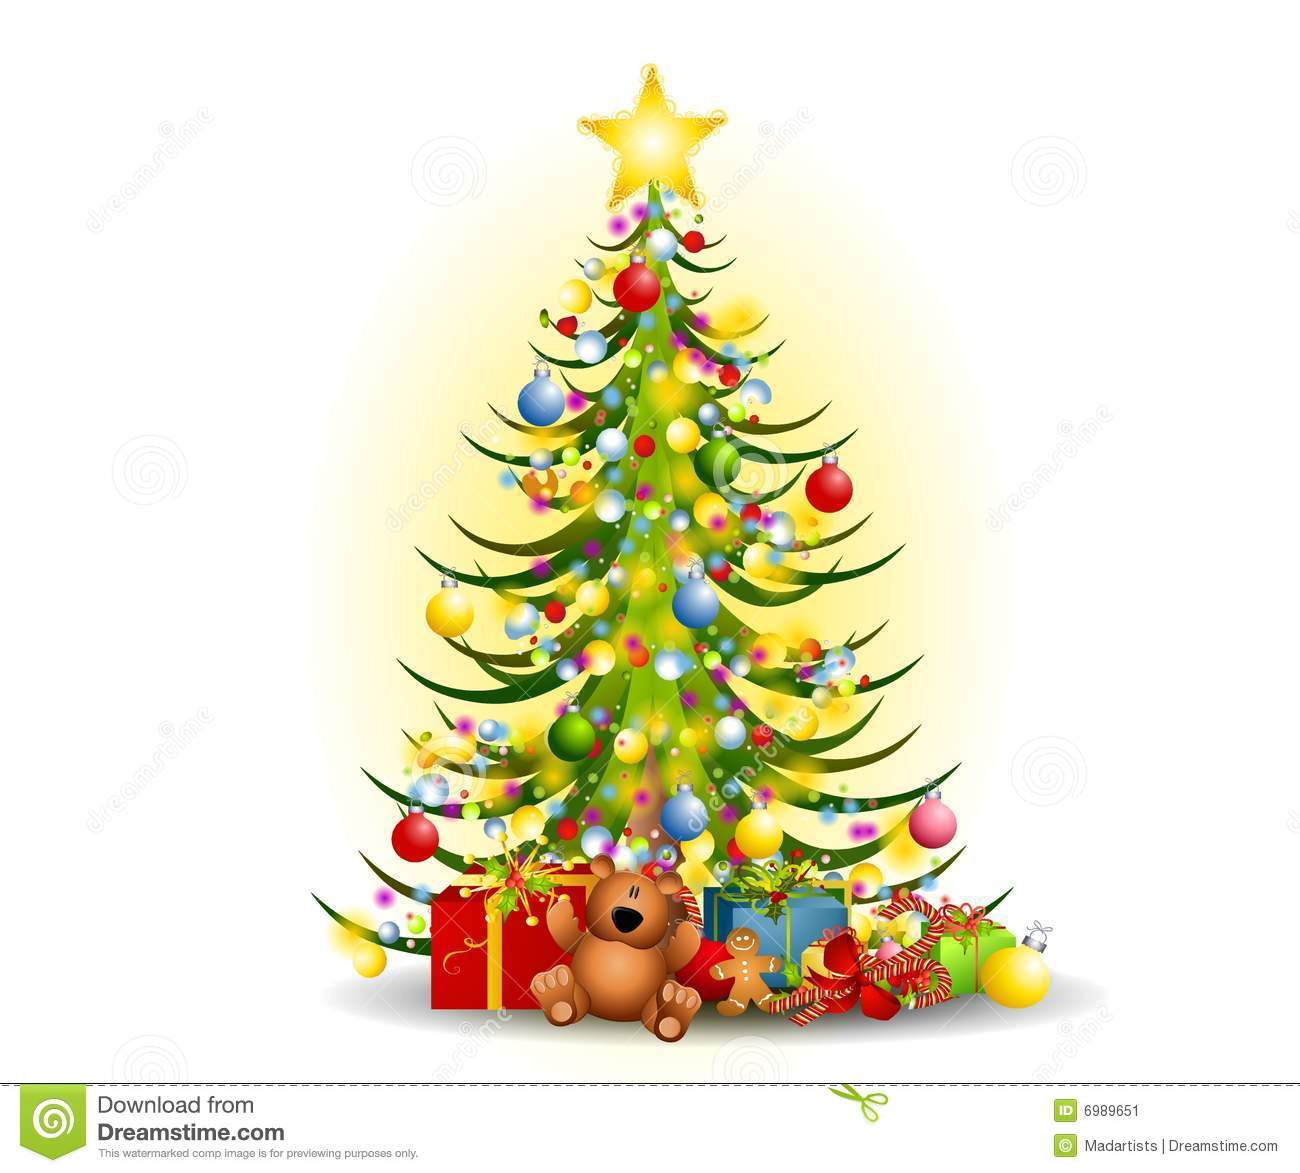 Clipart christmas tree with gifts.